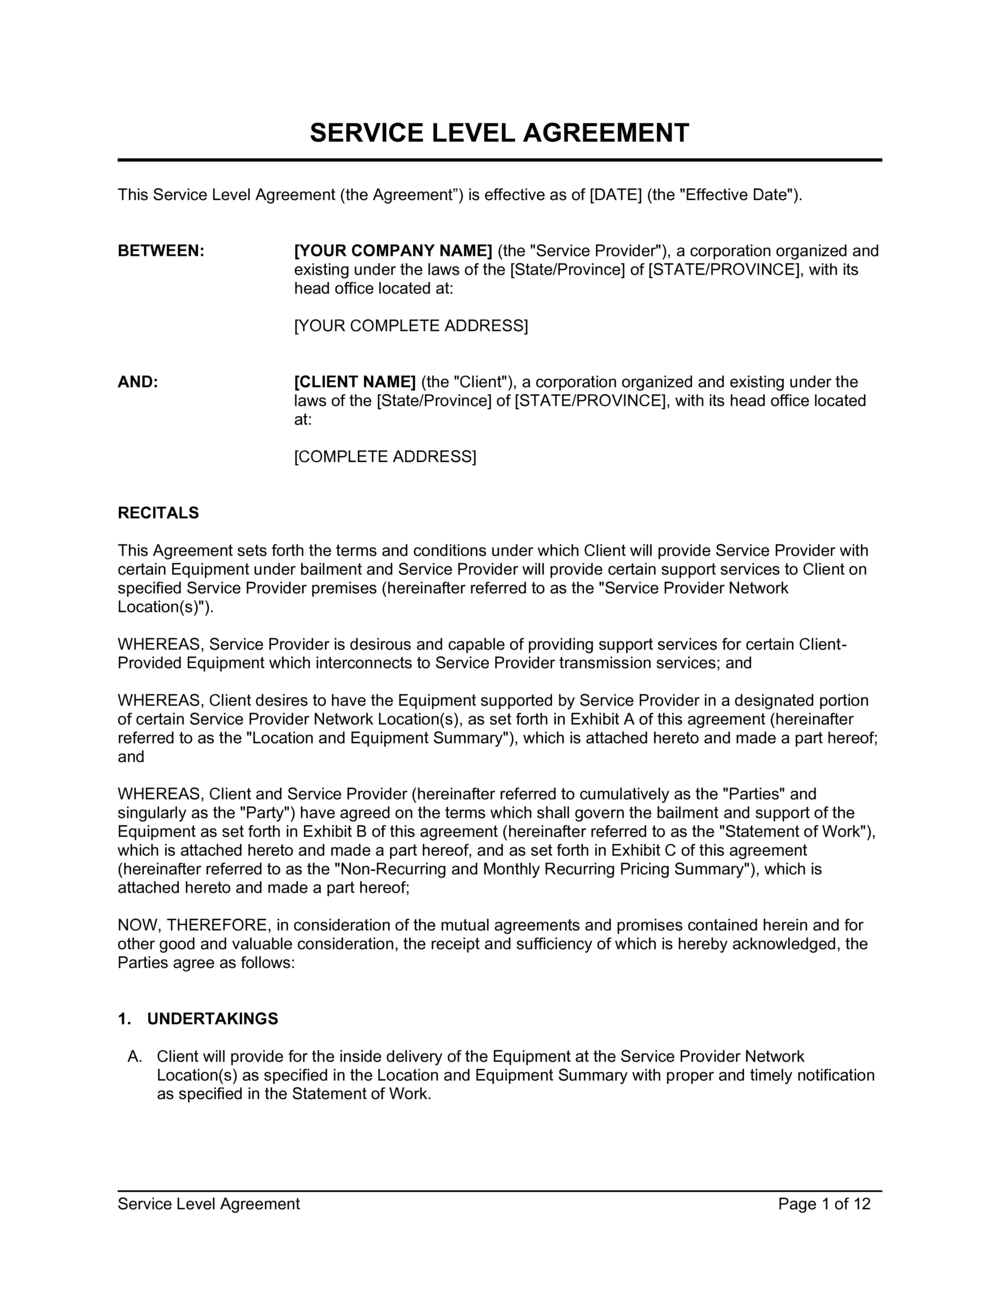 Business-in-a-Box's Service Level Agreement Template